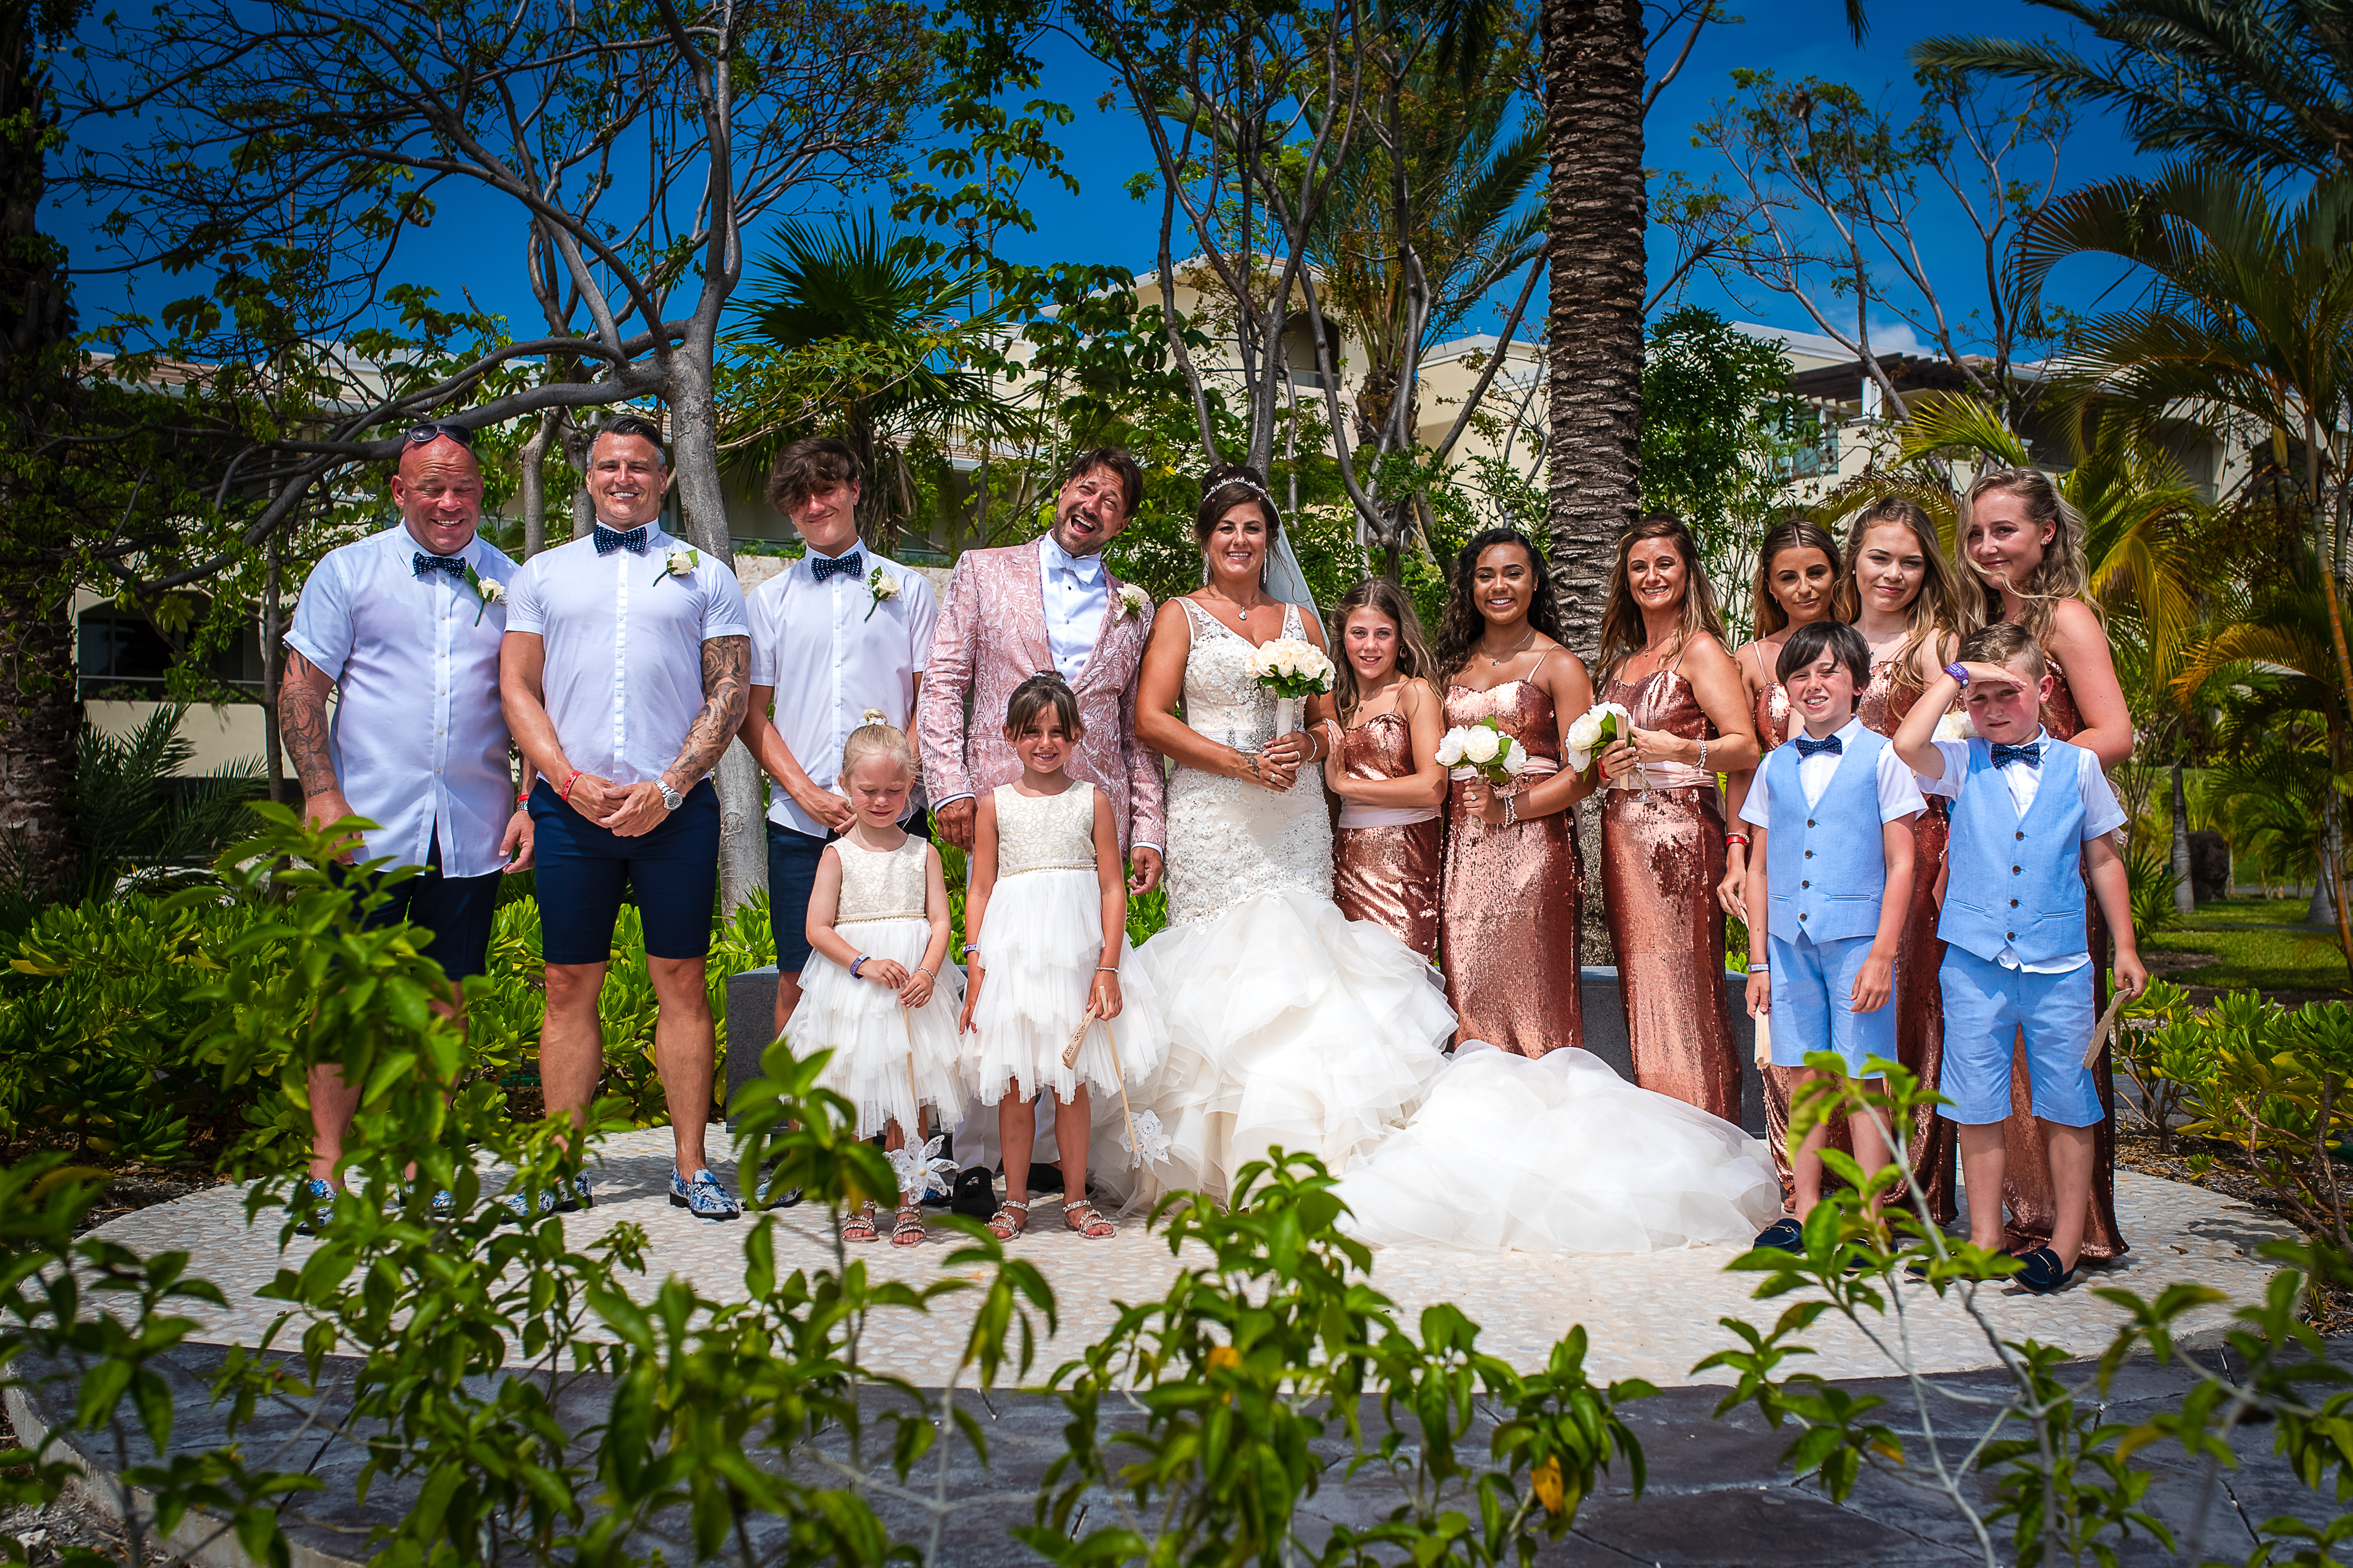 the wedding party posing for the photo with the bride and groom in the grand at moon palace resort